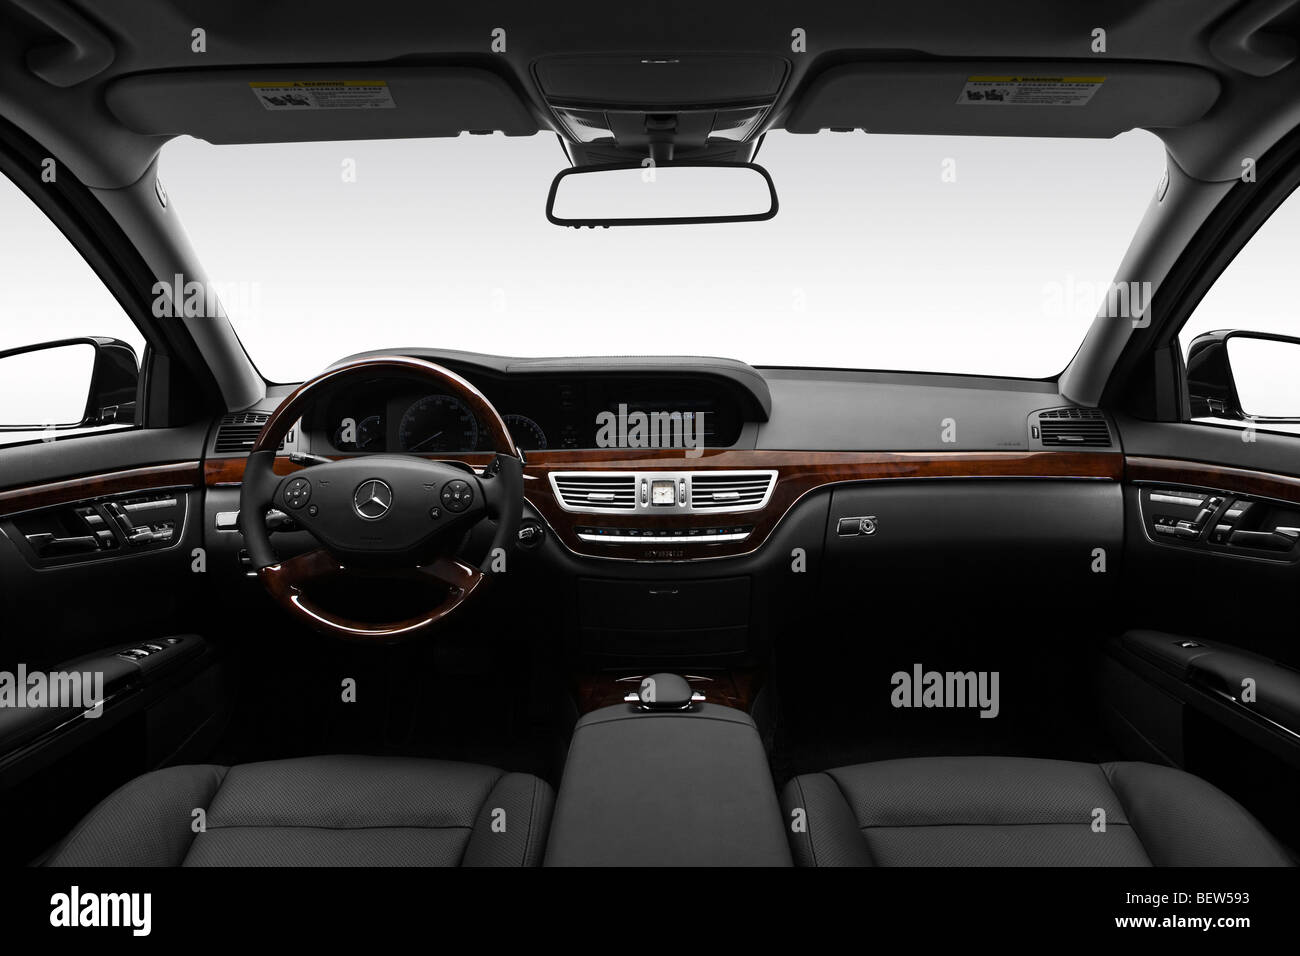 All Types 2010 s class : 2010 Mercedes-Benz S-Class Hybrid S400 in Black - Dashboard ...